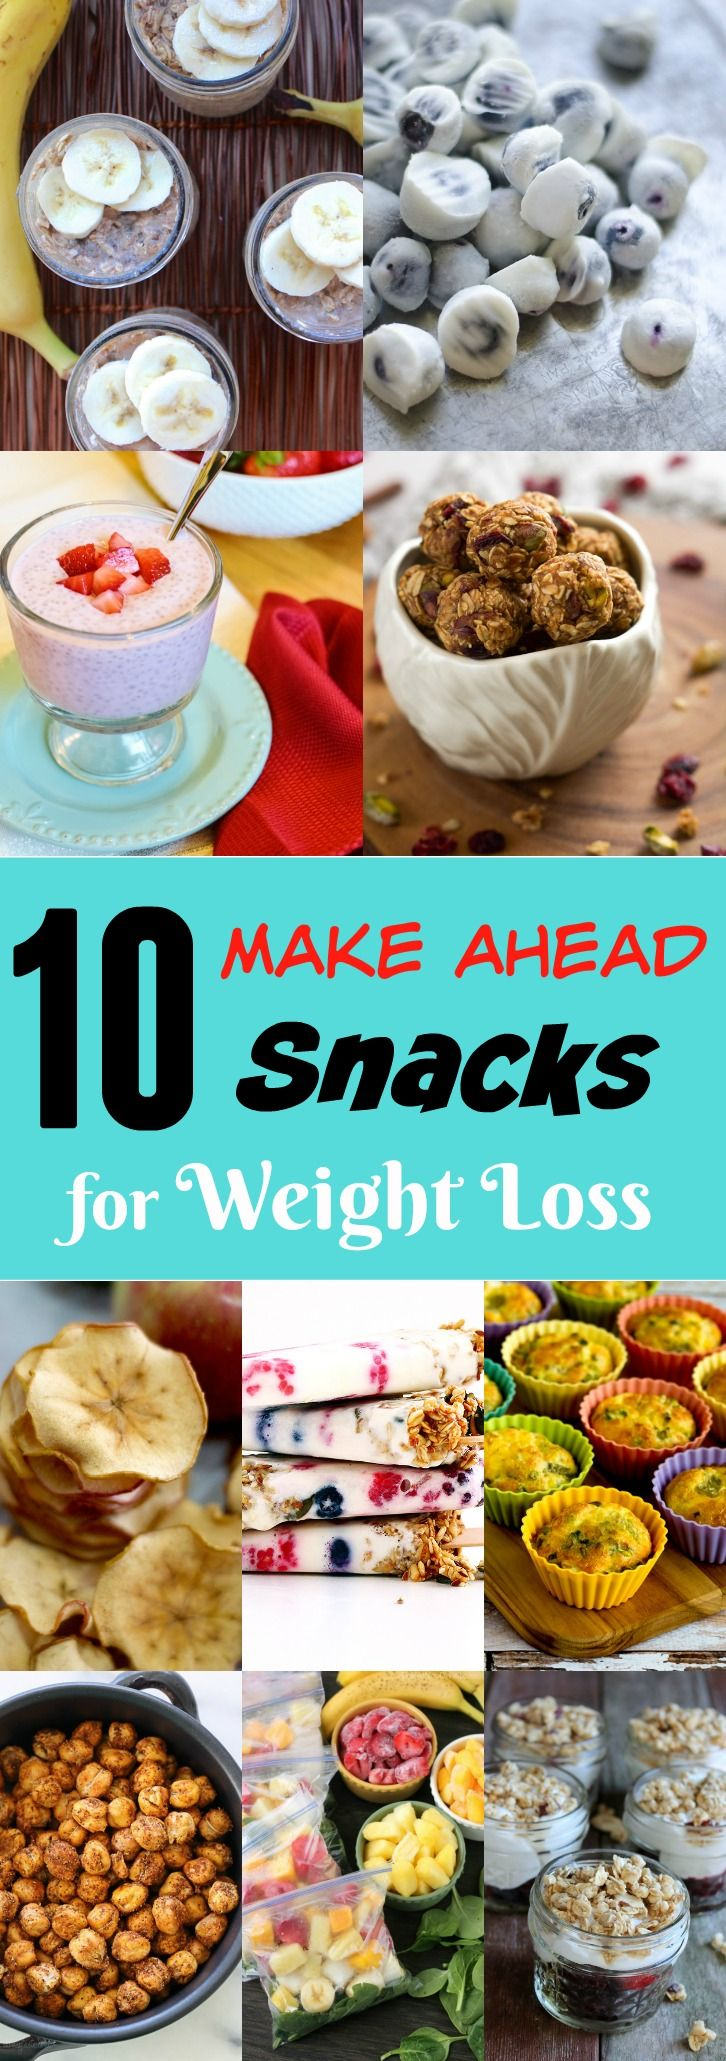 These Make Ahead Post-Workout Snacks will surely help you stay on the right track towards weight loss goals. They are easy to make, on-the-go snack recipes that will help stave off hunger and give your body energy and fuel after a workout. best